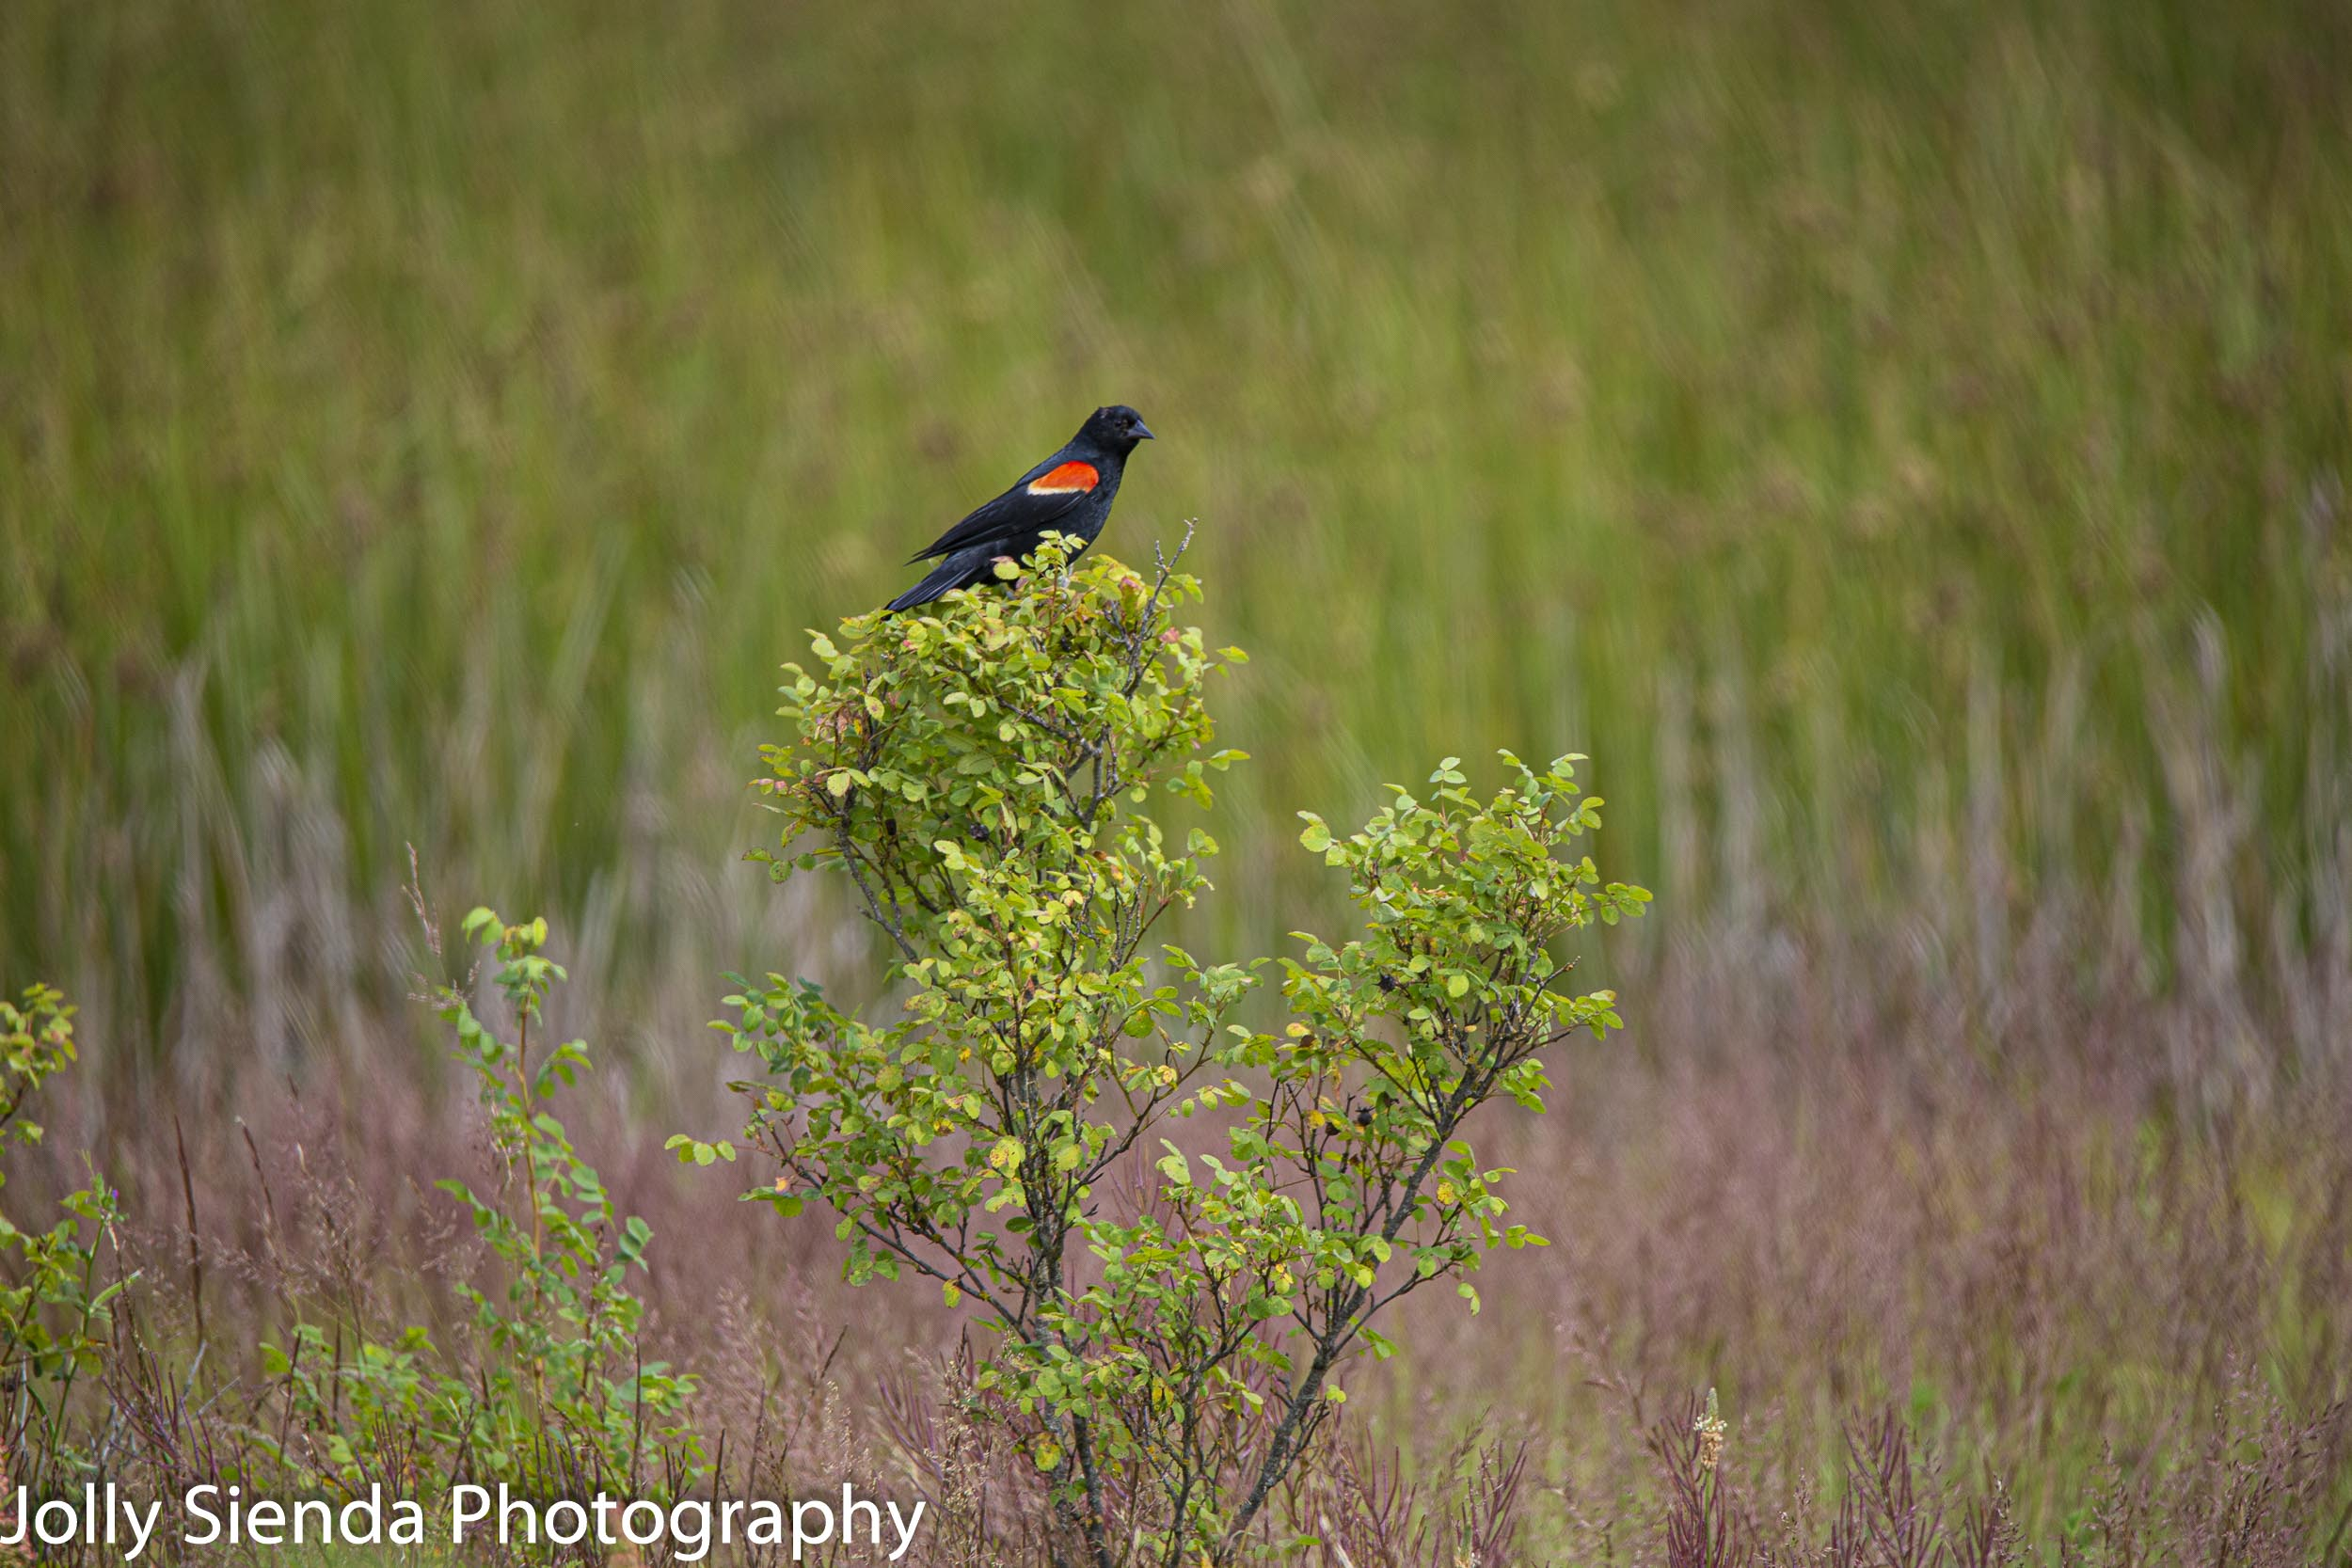 Red Winged Blackbird on a bush at the wetlands along the Shine Tidelands State Park, Olympic Peninsula